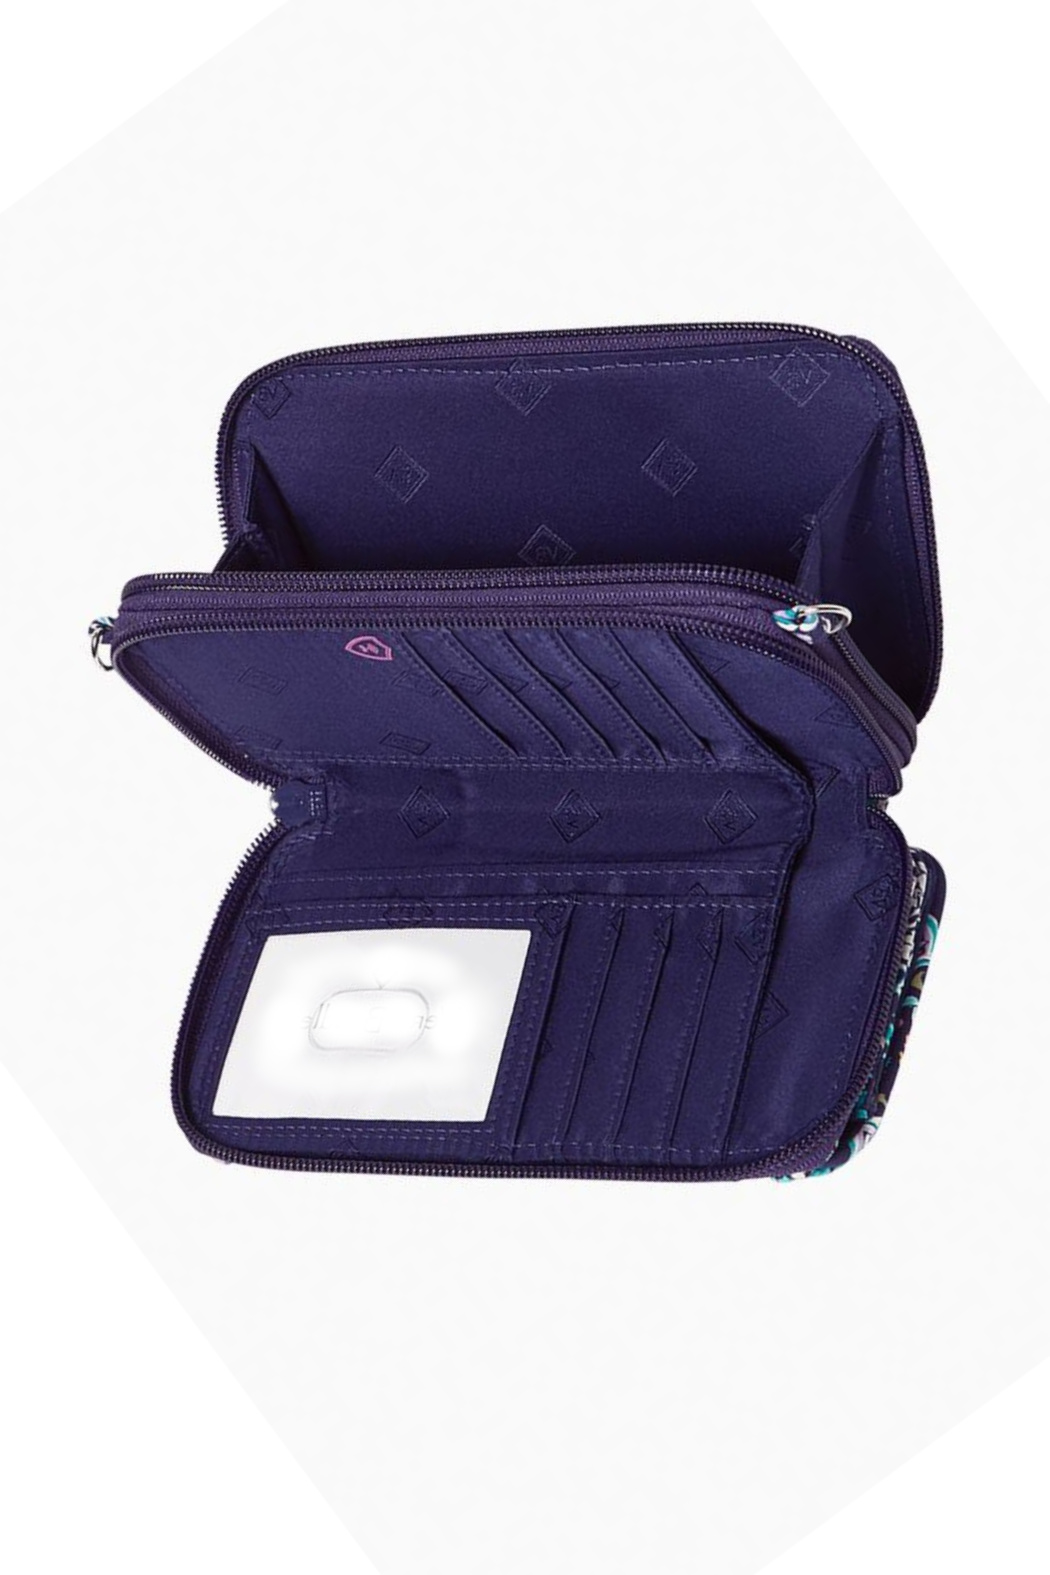 Vera Bradley French Paisley All In One Crossbody - Side Cropped Image